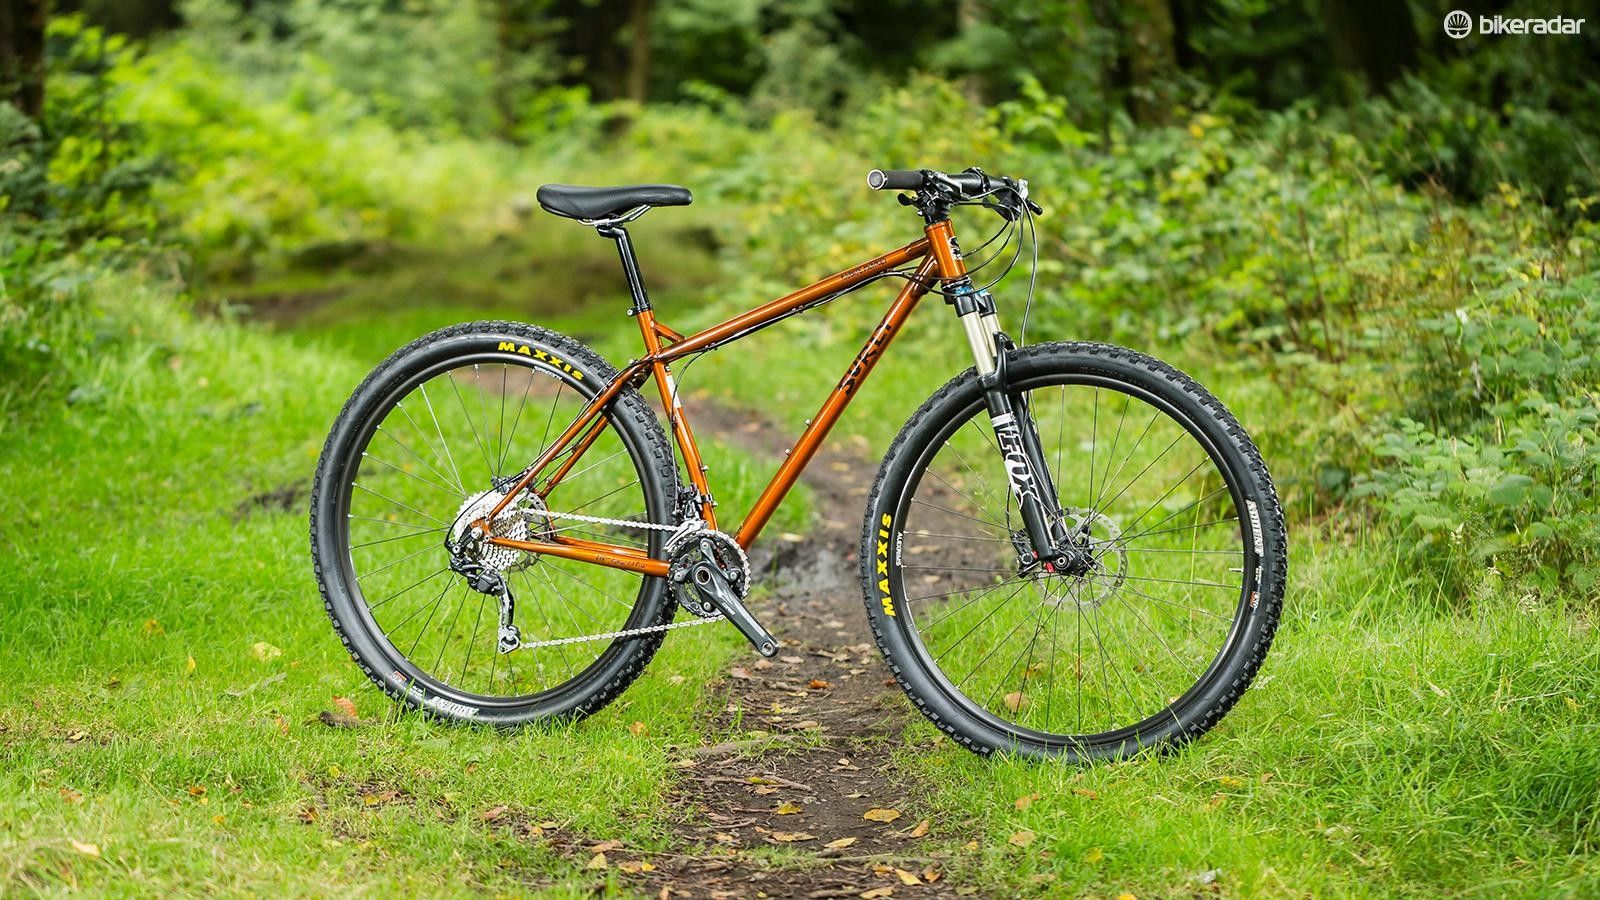 The Surly Karate Monkey's distinctive semi-clearcoat paint finish leaves all the frame's welding details and heat marks visible